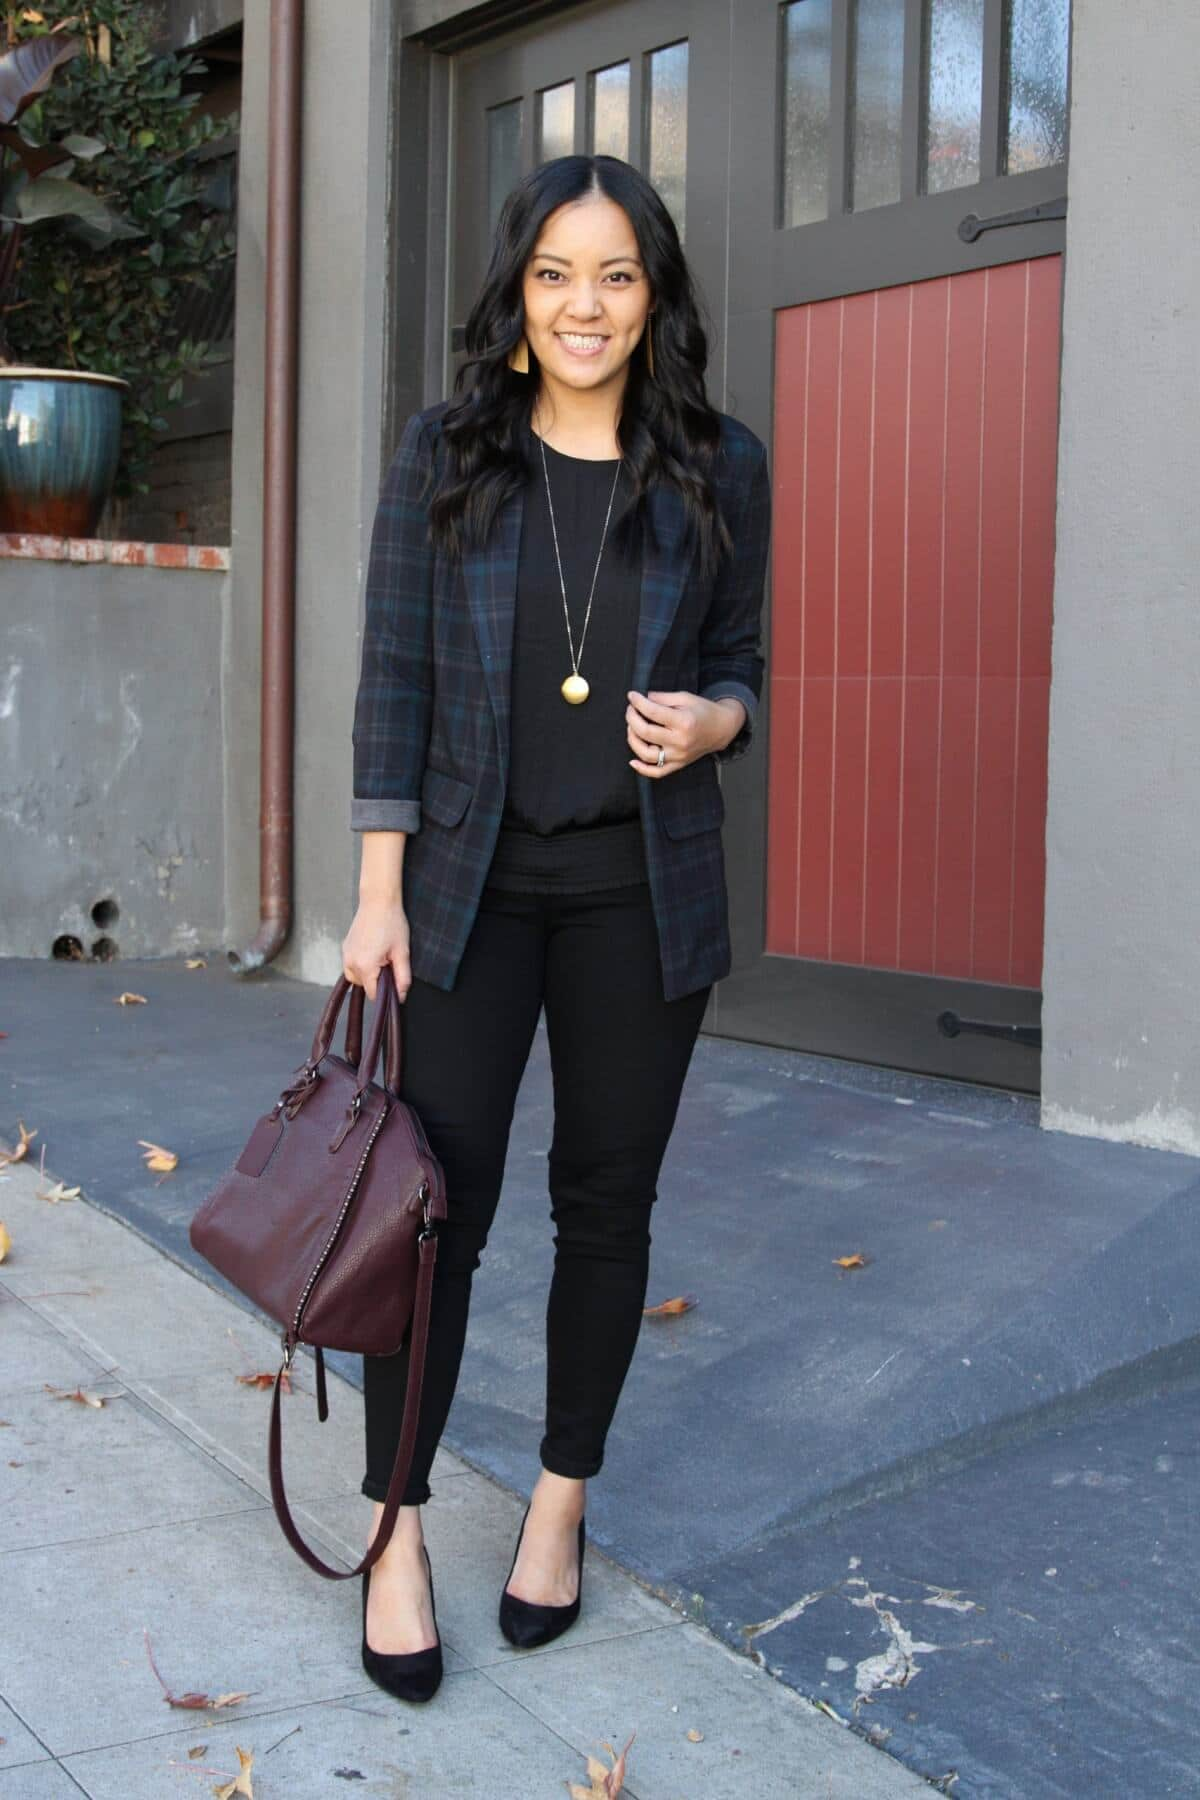 Business Casual Outfit: black blouse + black plaid blazer + black skinny pants + black suede heels + maroon bag + gold circle pendant necklace + metallic leather earrings